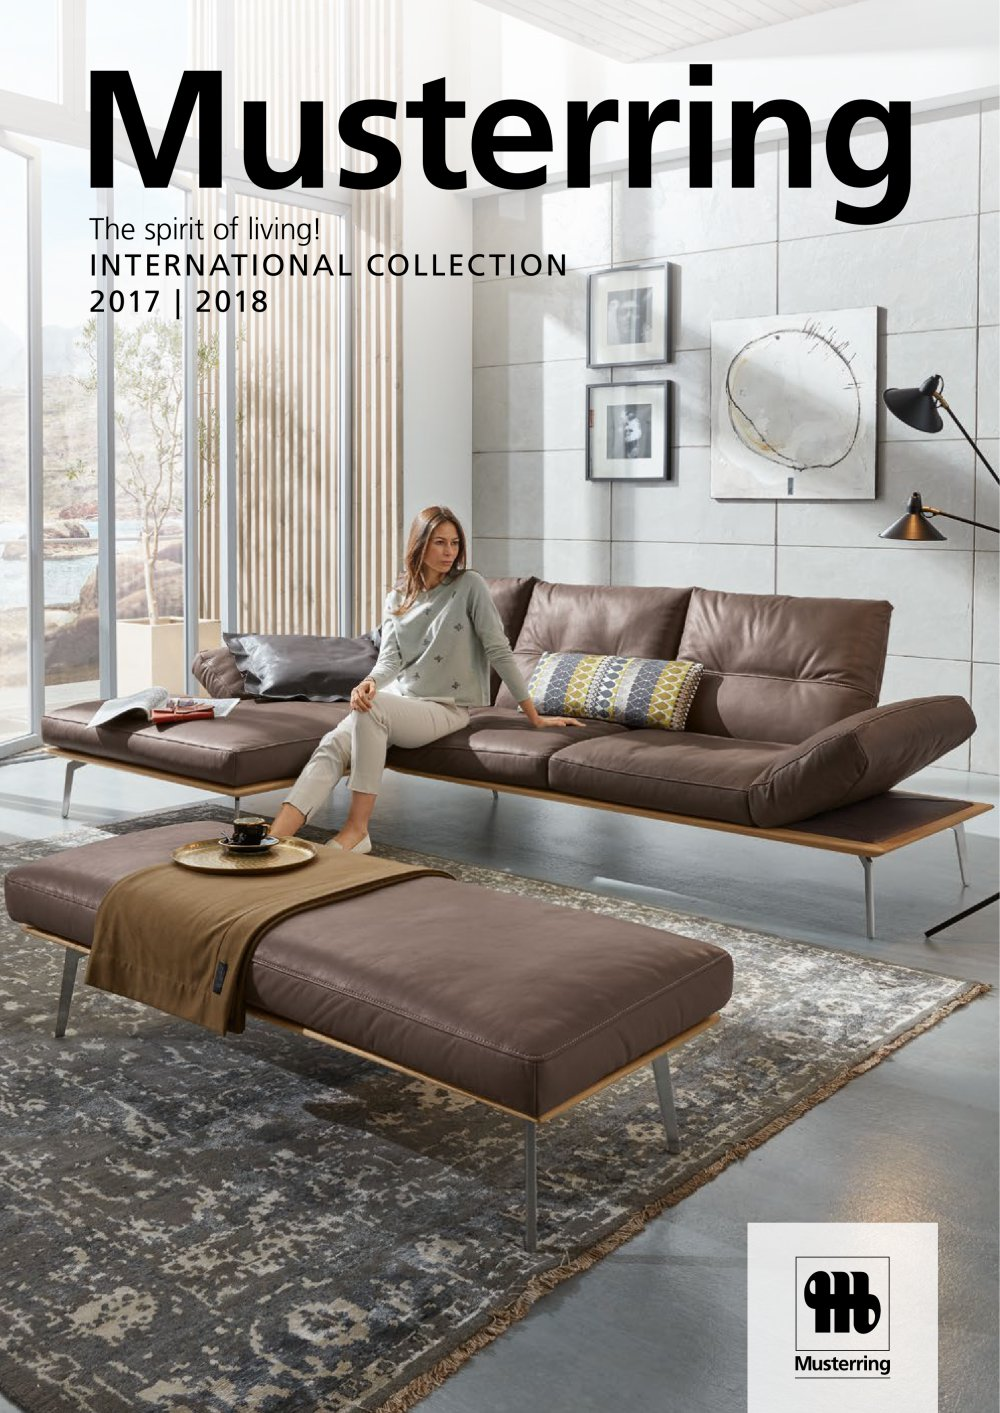 International Collection 2017 2018 Musterring Pdf Catalogs